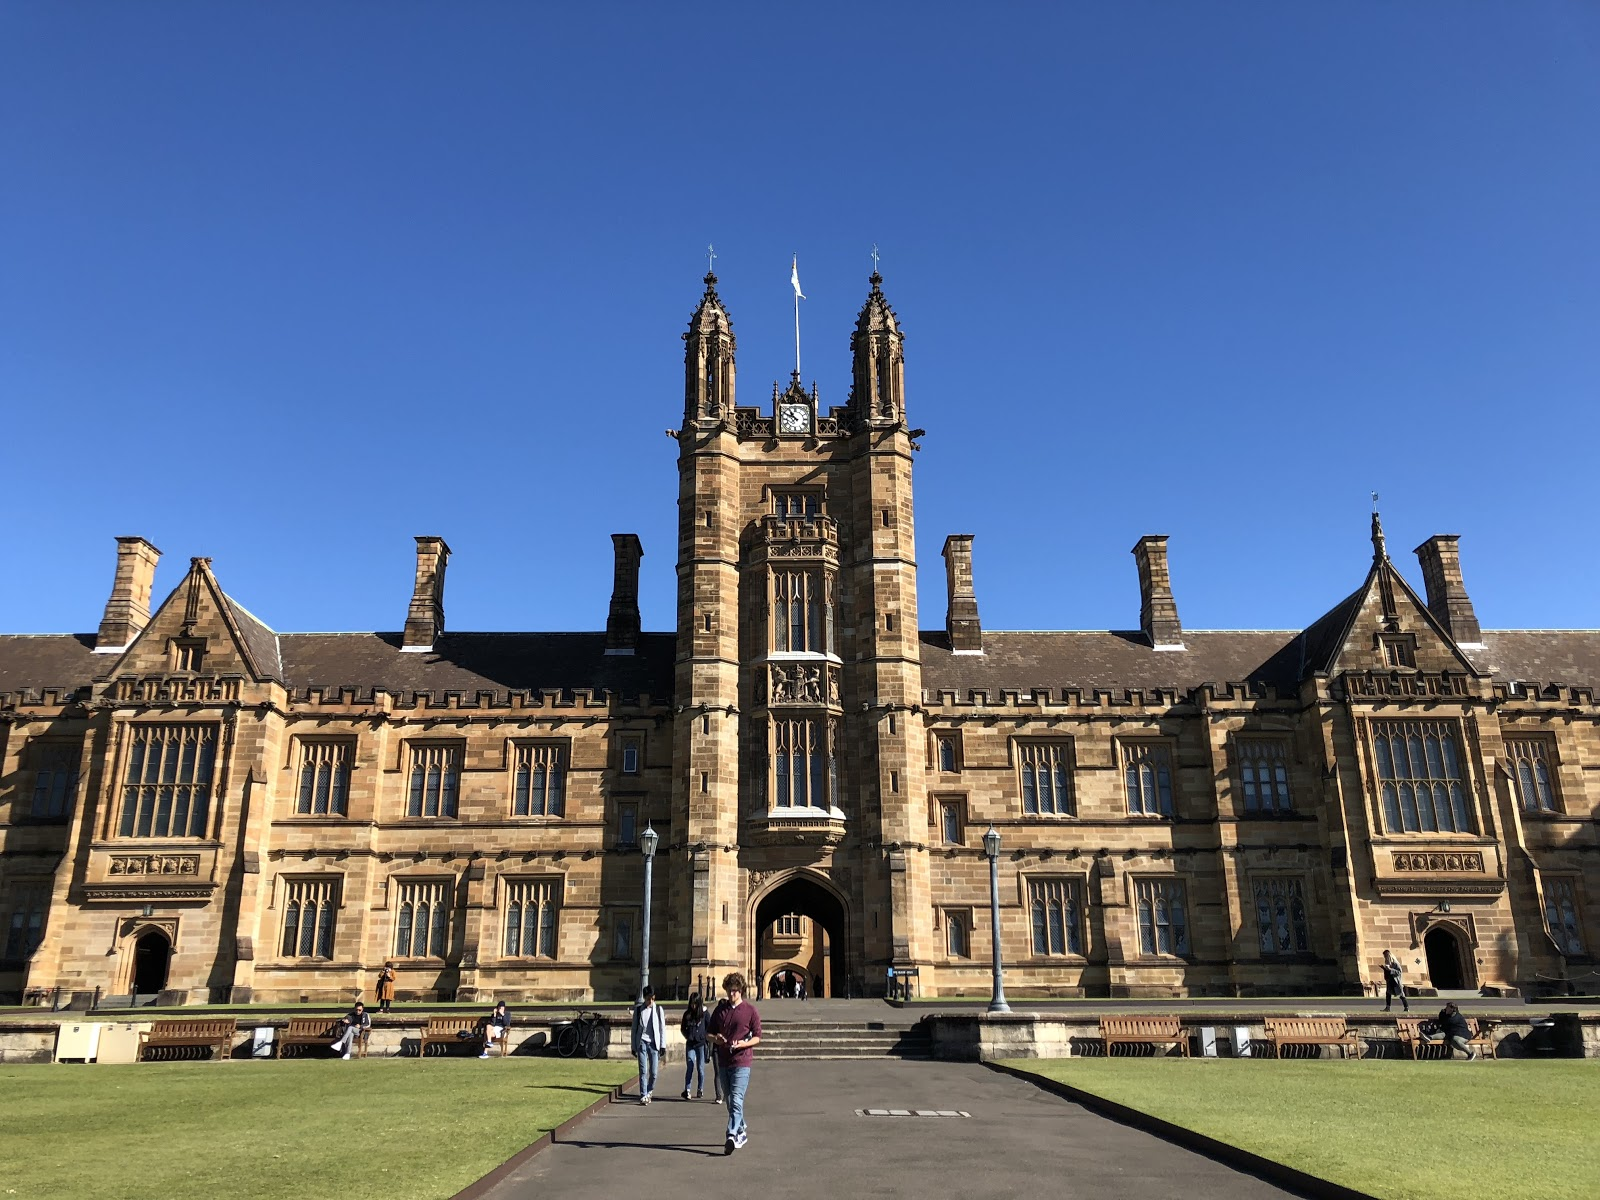 A picture of a cathedral-like building at the University of Sydney